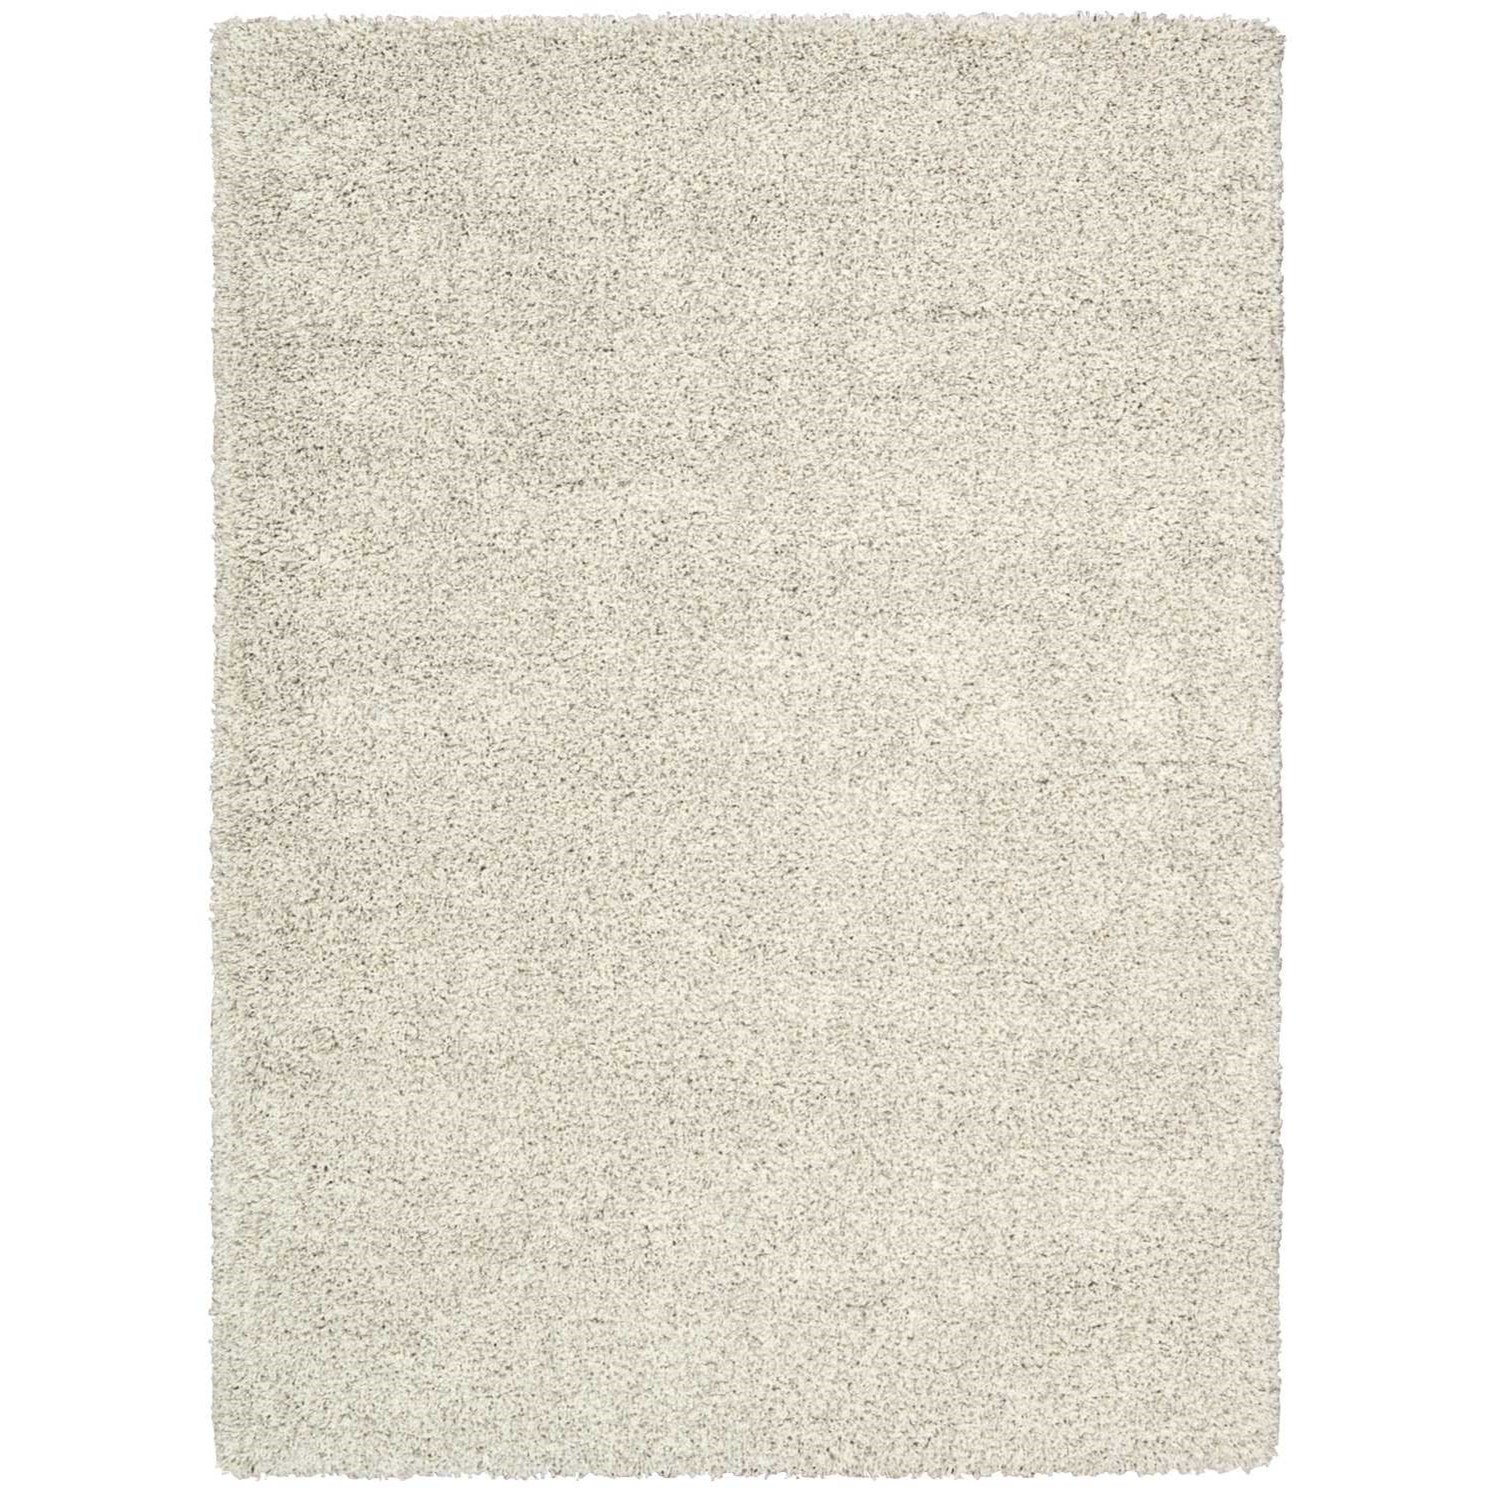 "Amore 3'11"" x 5'11"" Bone Rectangle Rug by Nourison at Home Collections Furniture"